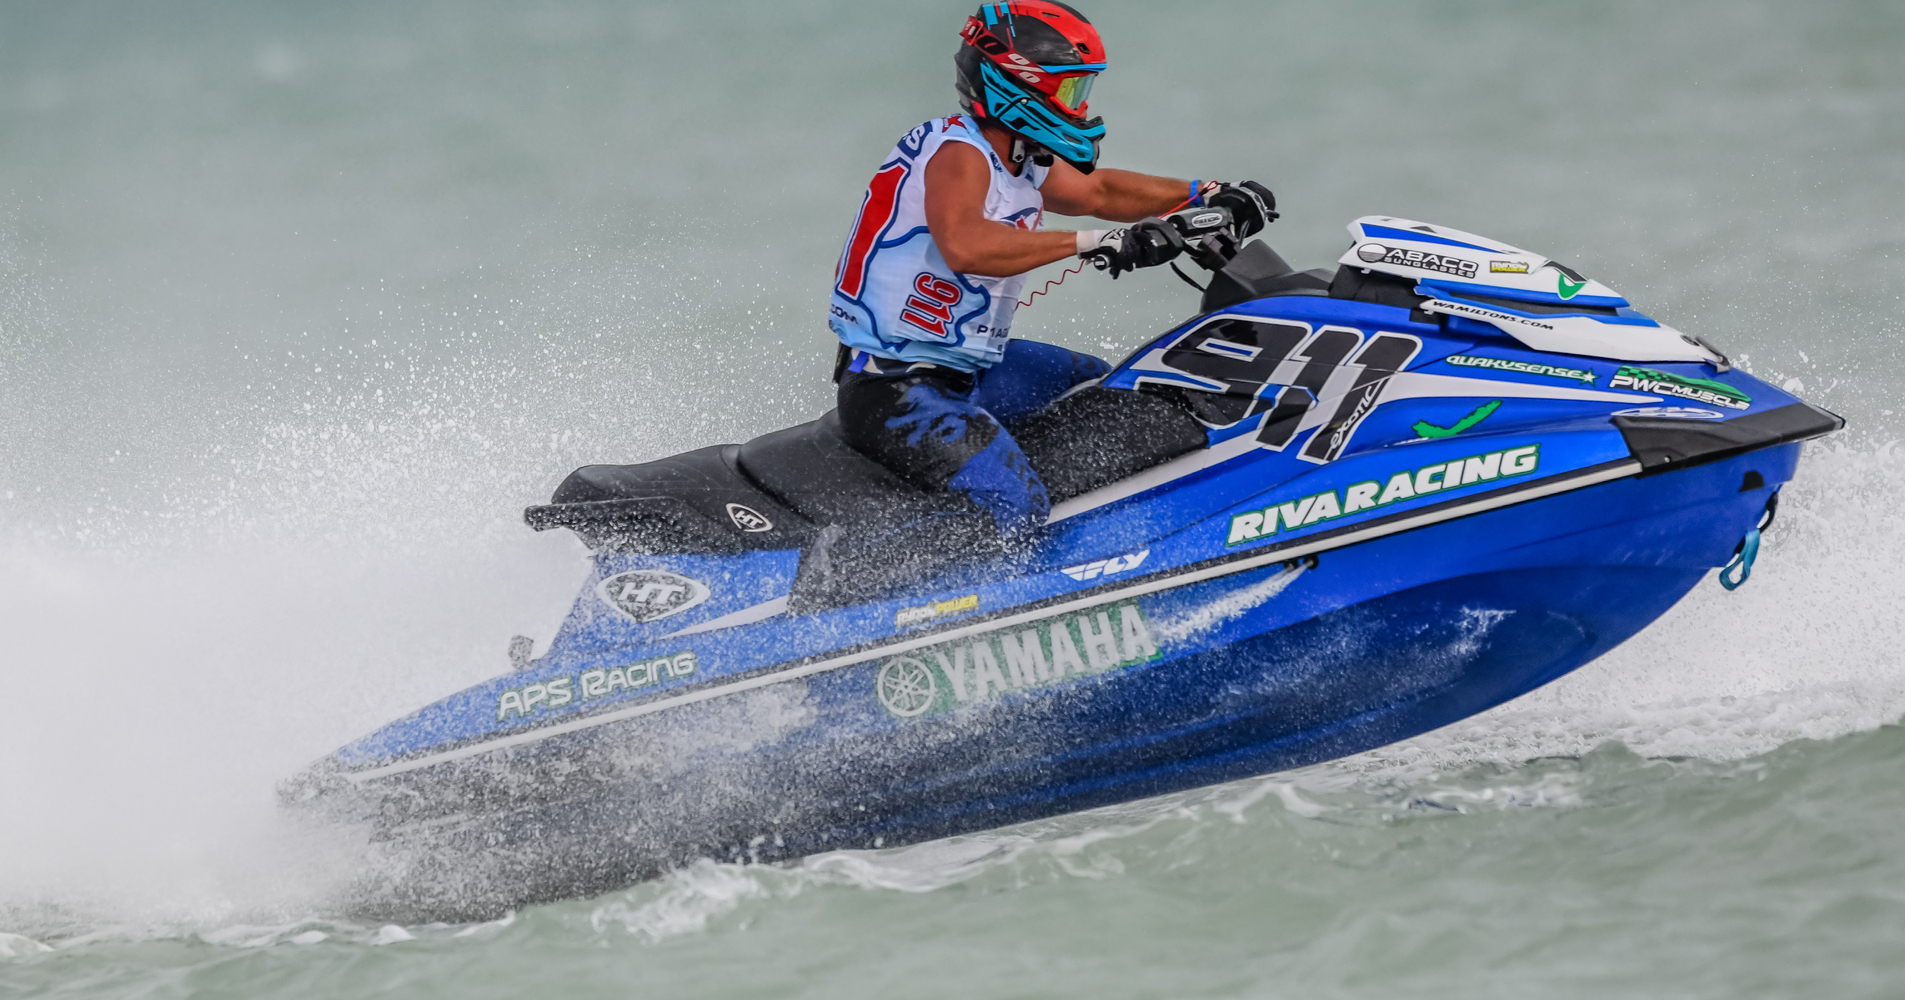 Eric Francis' chances were blown when a mechanical issue stopped him from starting race three